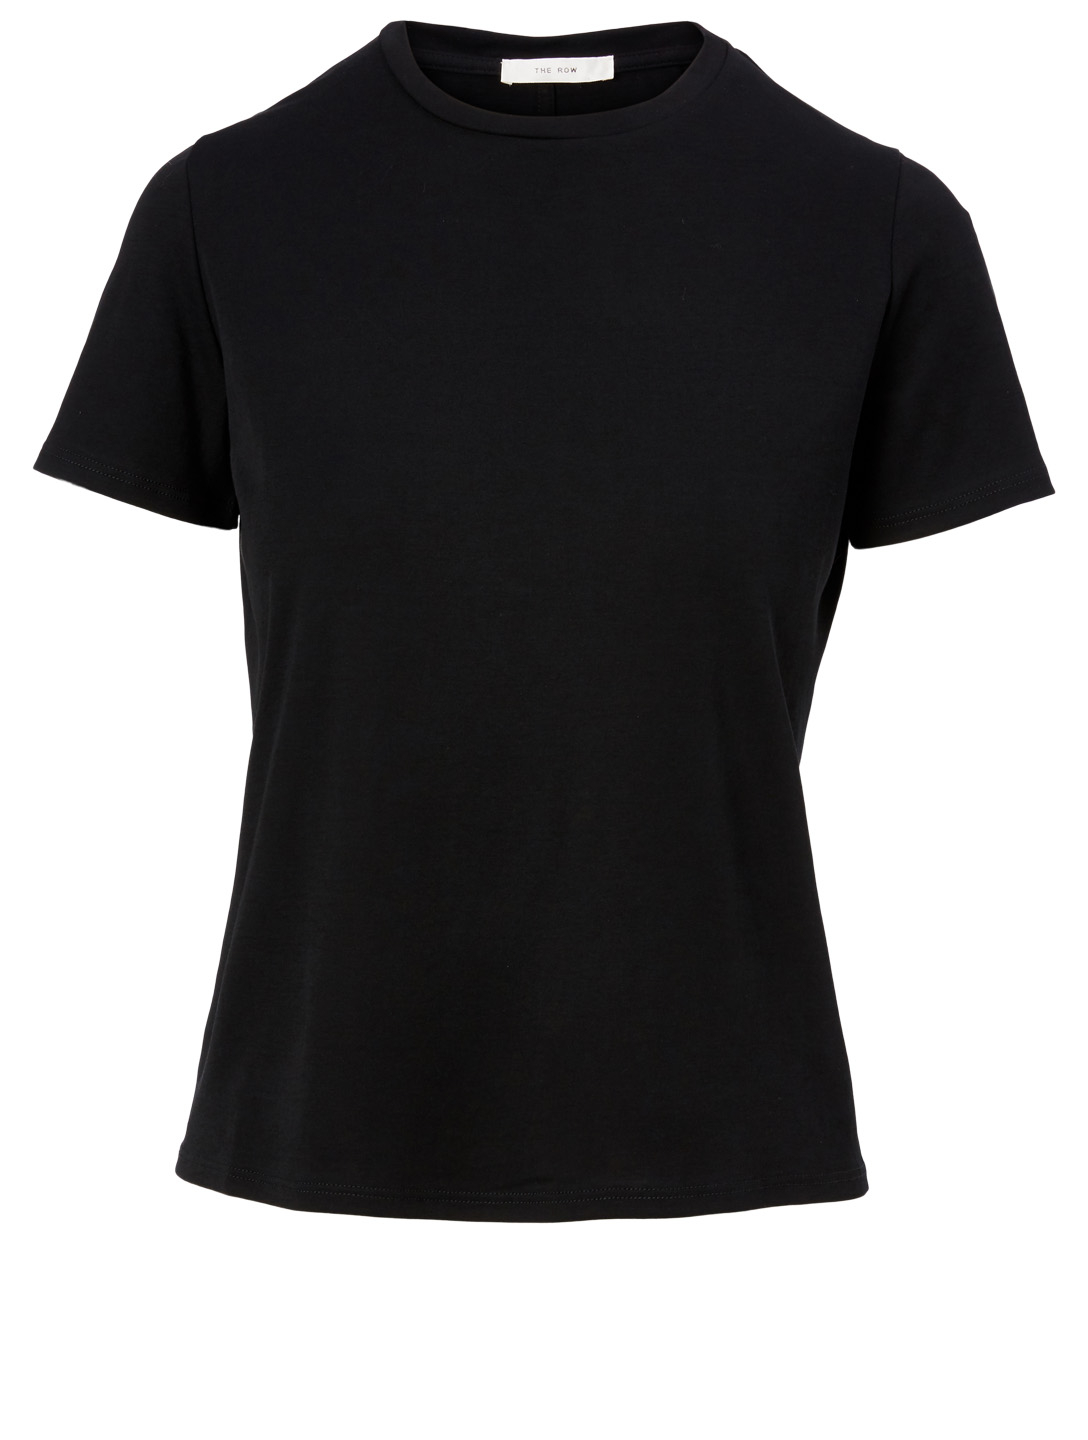 THE ROW Wesler Cotton T-Shirt Women's Black